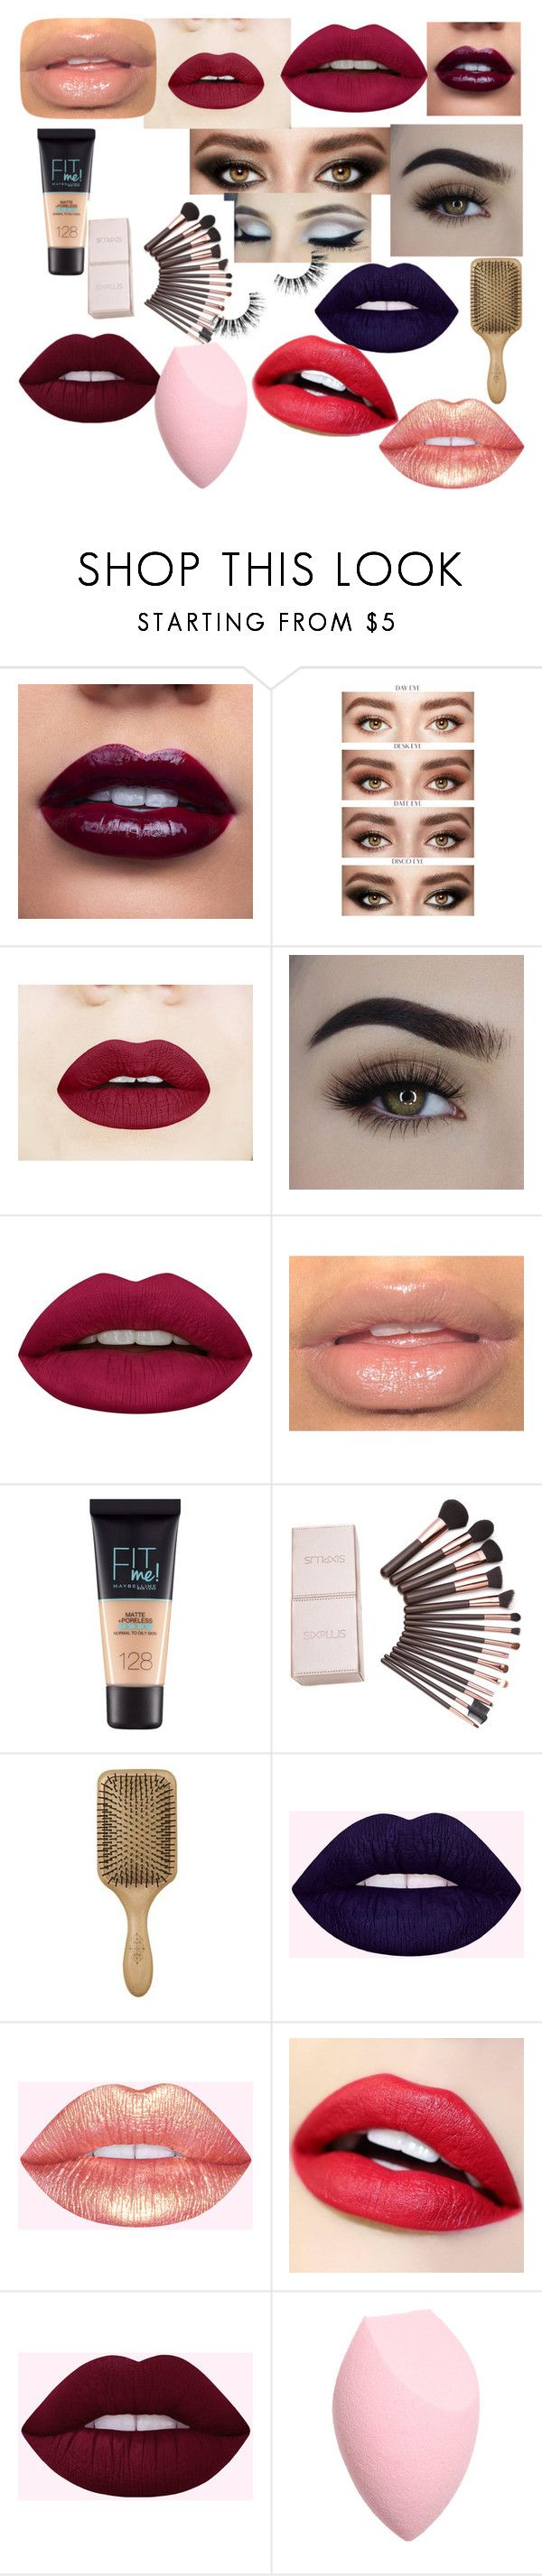 """""""Shopping for Makeup"""" by ohmygshsomeoneactually on Polyvore featuring Huda Beauty, Maybelline, London Fog and Velour Lashes"""